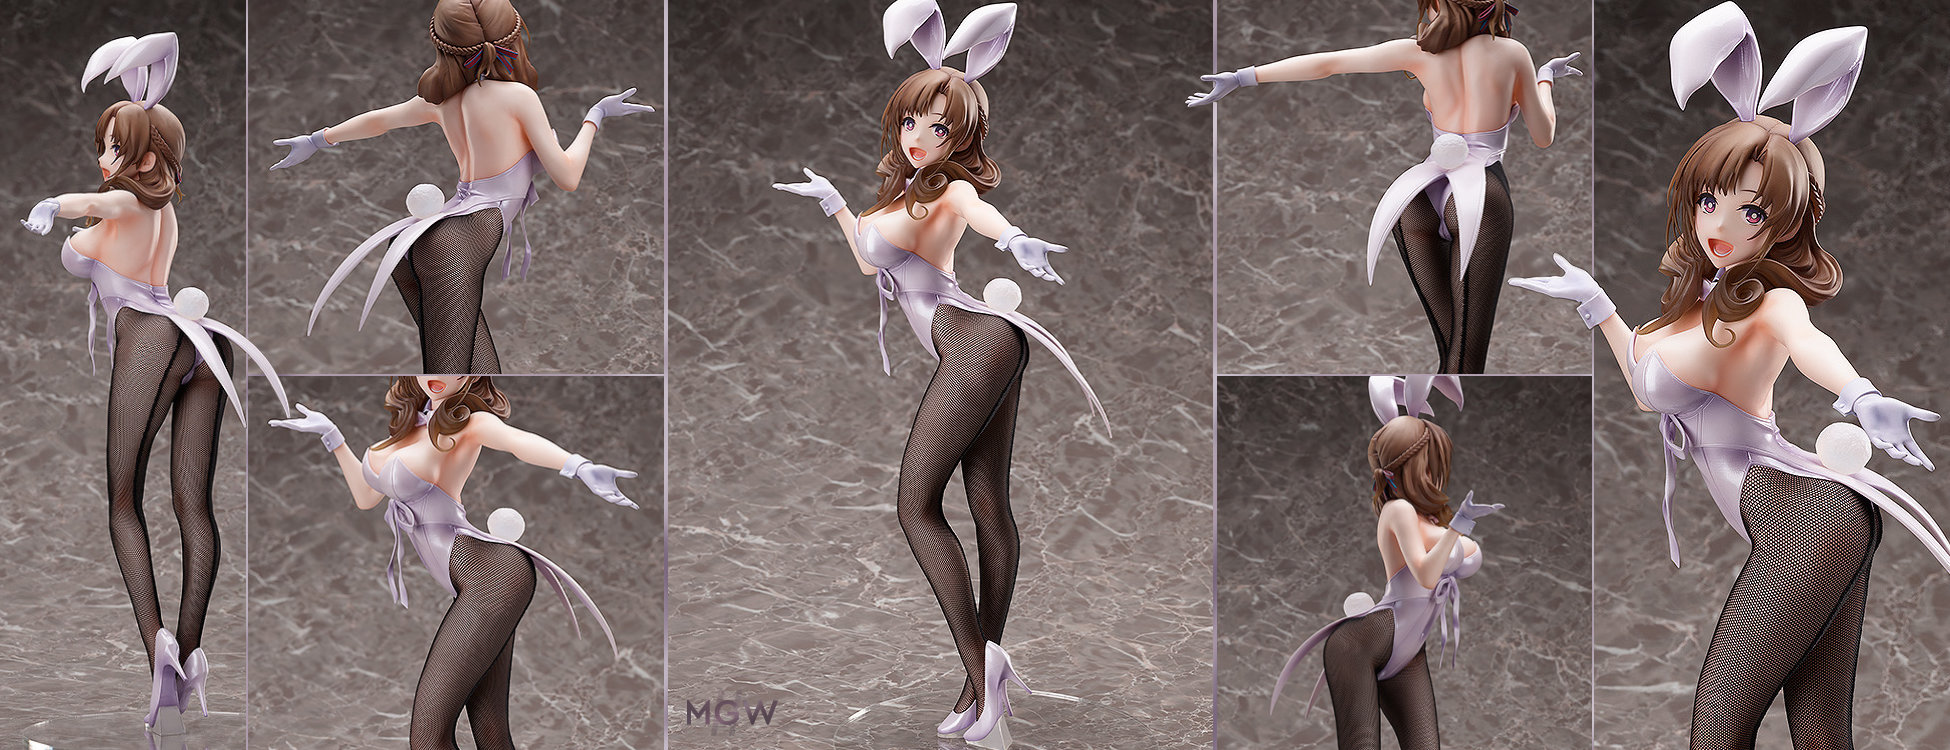 Oosuki Mamako Bunny Ver. by FREEing from Okaa san Online